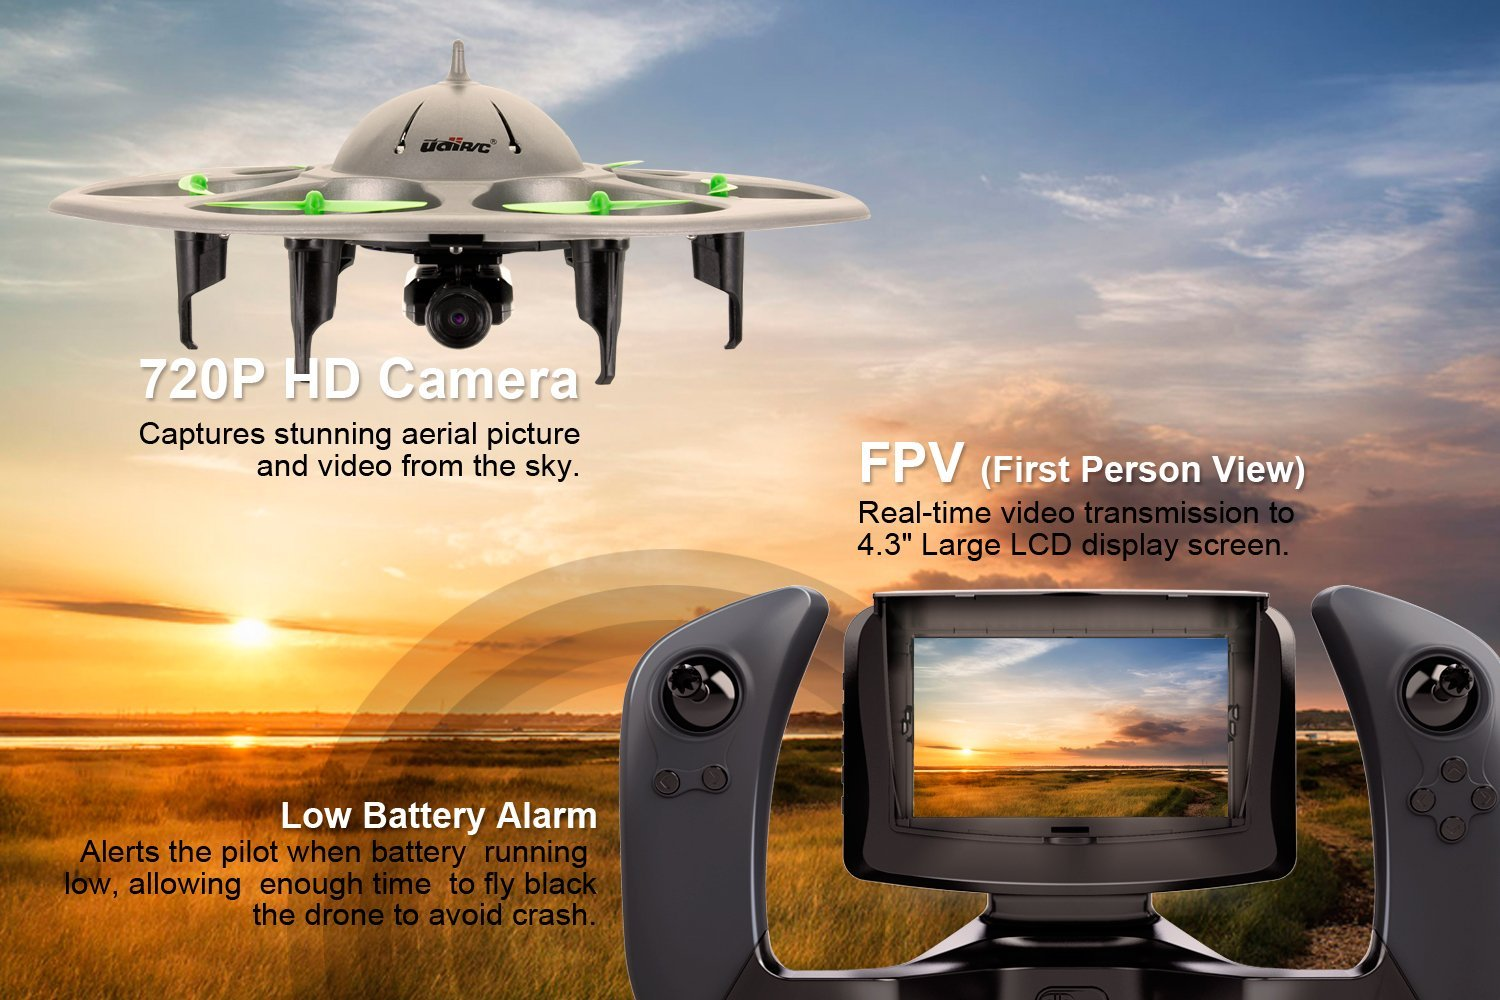 FPV Quadcopter U845 Voyager with monitor